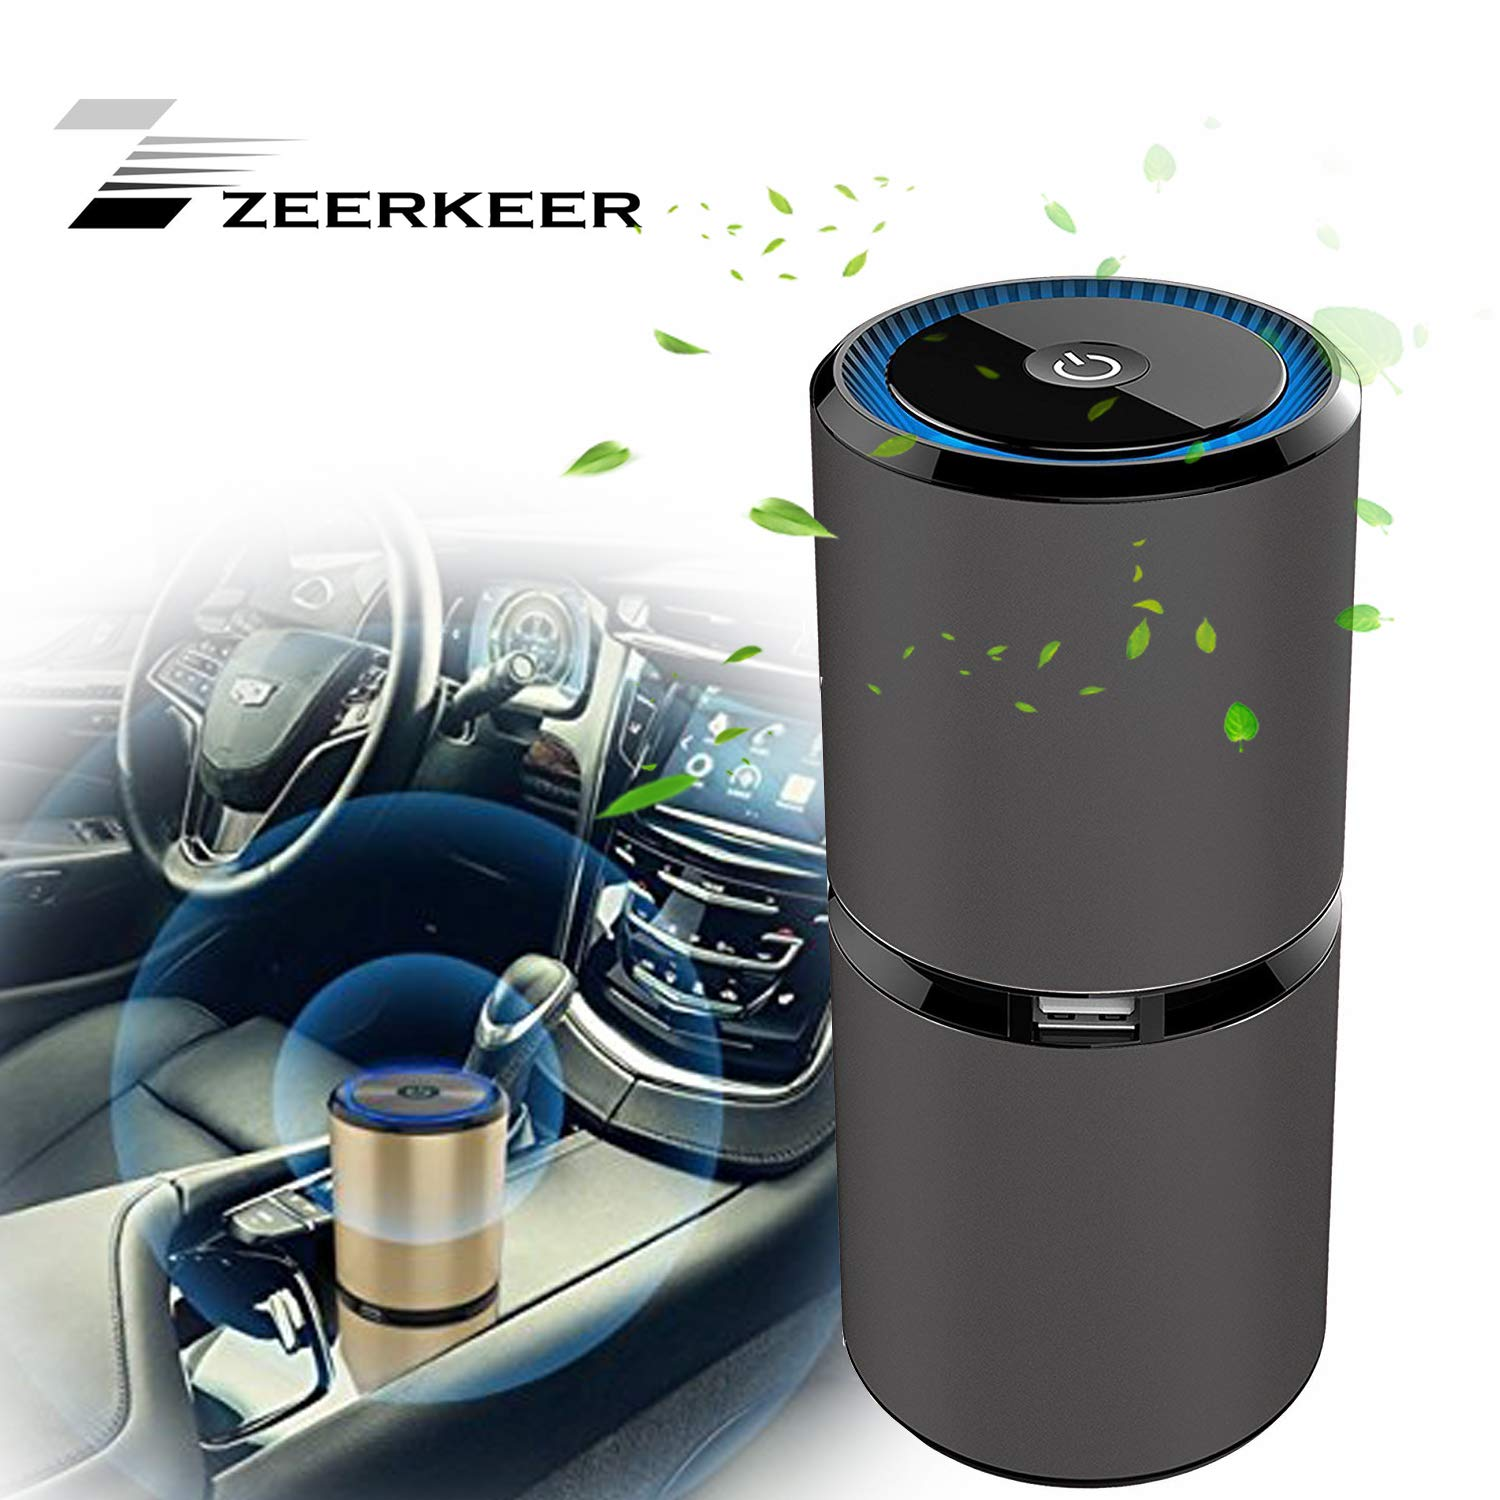 Car Ionizer Air Purifier, Removes Dust, Cigarette Smoke, Bad Odors,DUAL USB CHARGING PORTS (black)